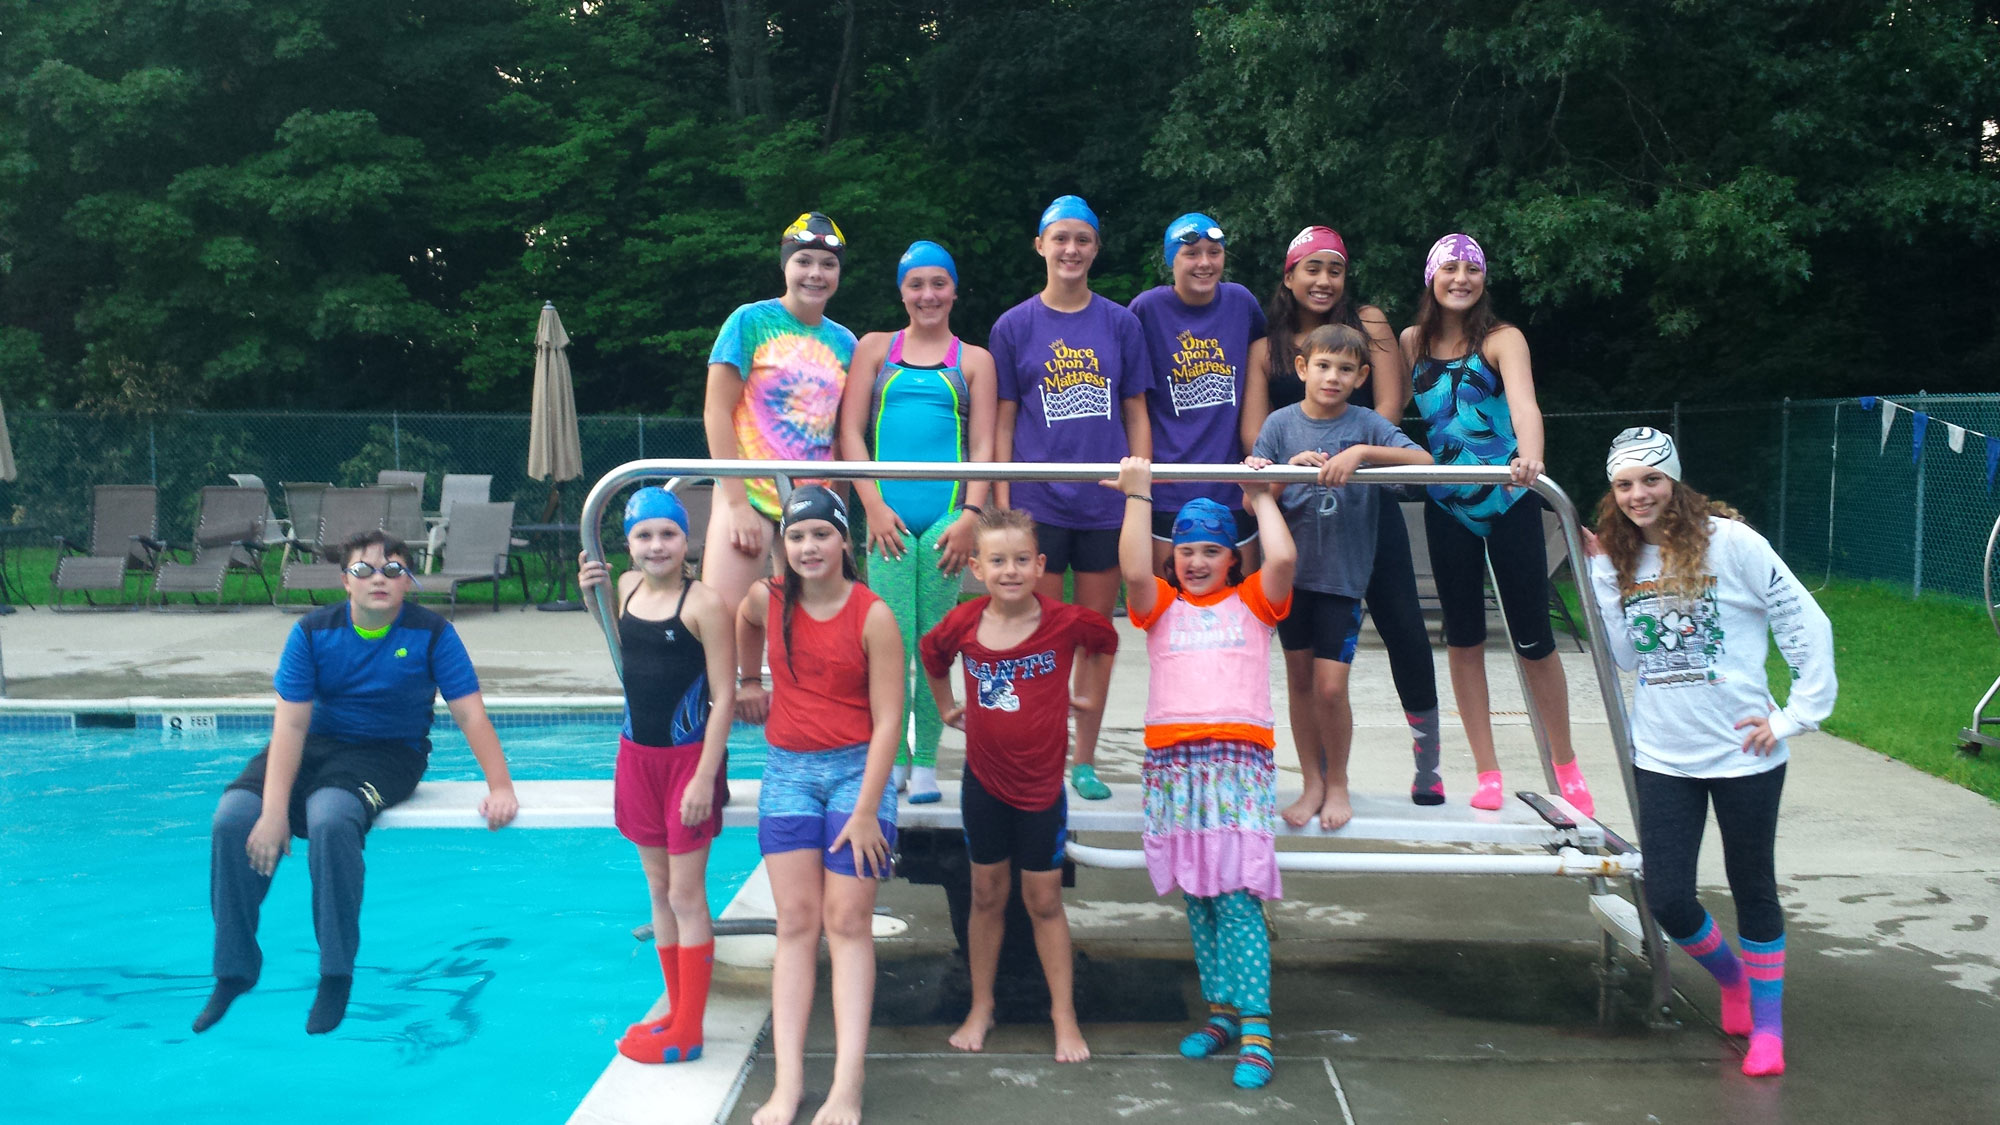 Hurely Rec Swim Team posing by the diving board